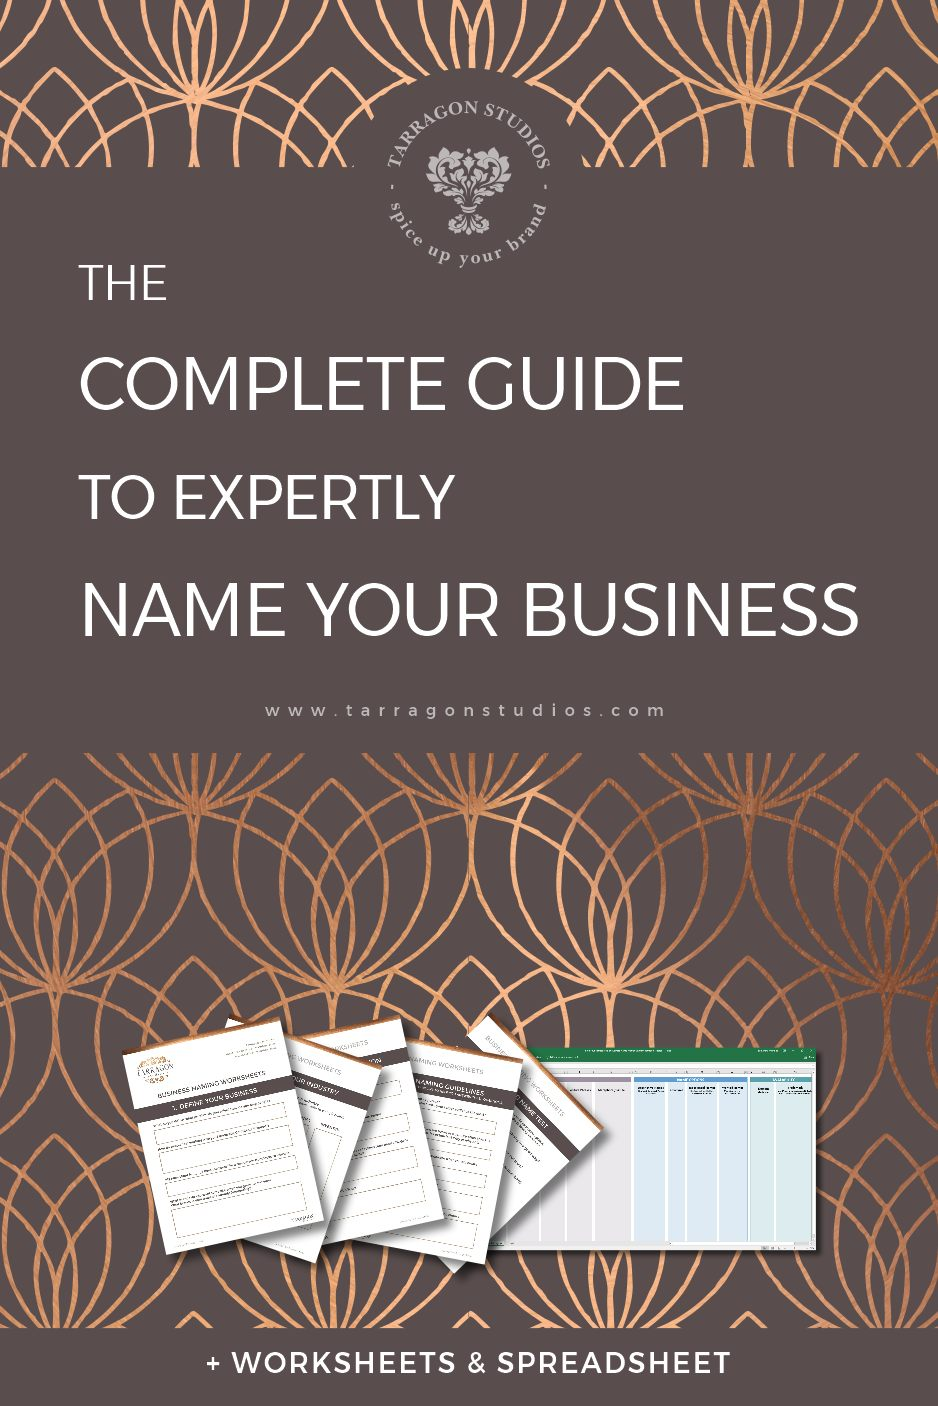 """Are you frustrated that something as """"simple"""" as a name is holding up your business launch? Follow this guide to name your business like an expert! (You'll be done in no time!) #business #branding #businessguide #smallbusiness"""